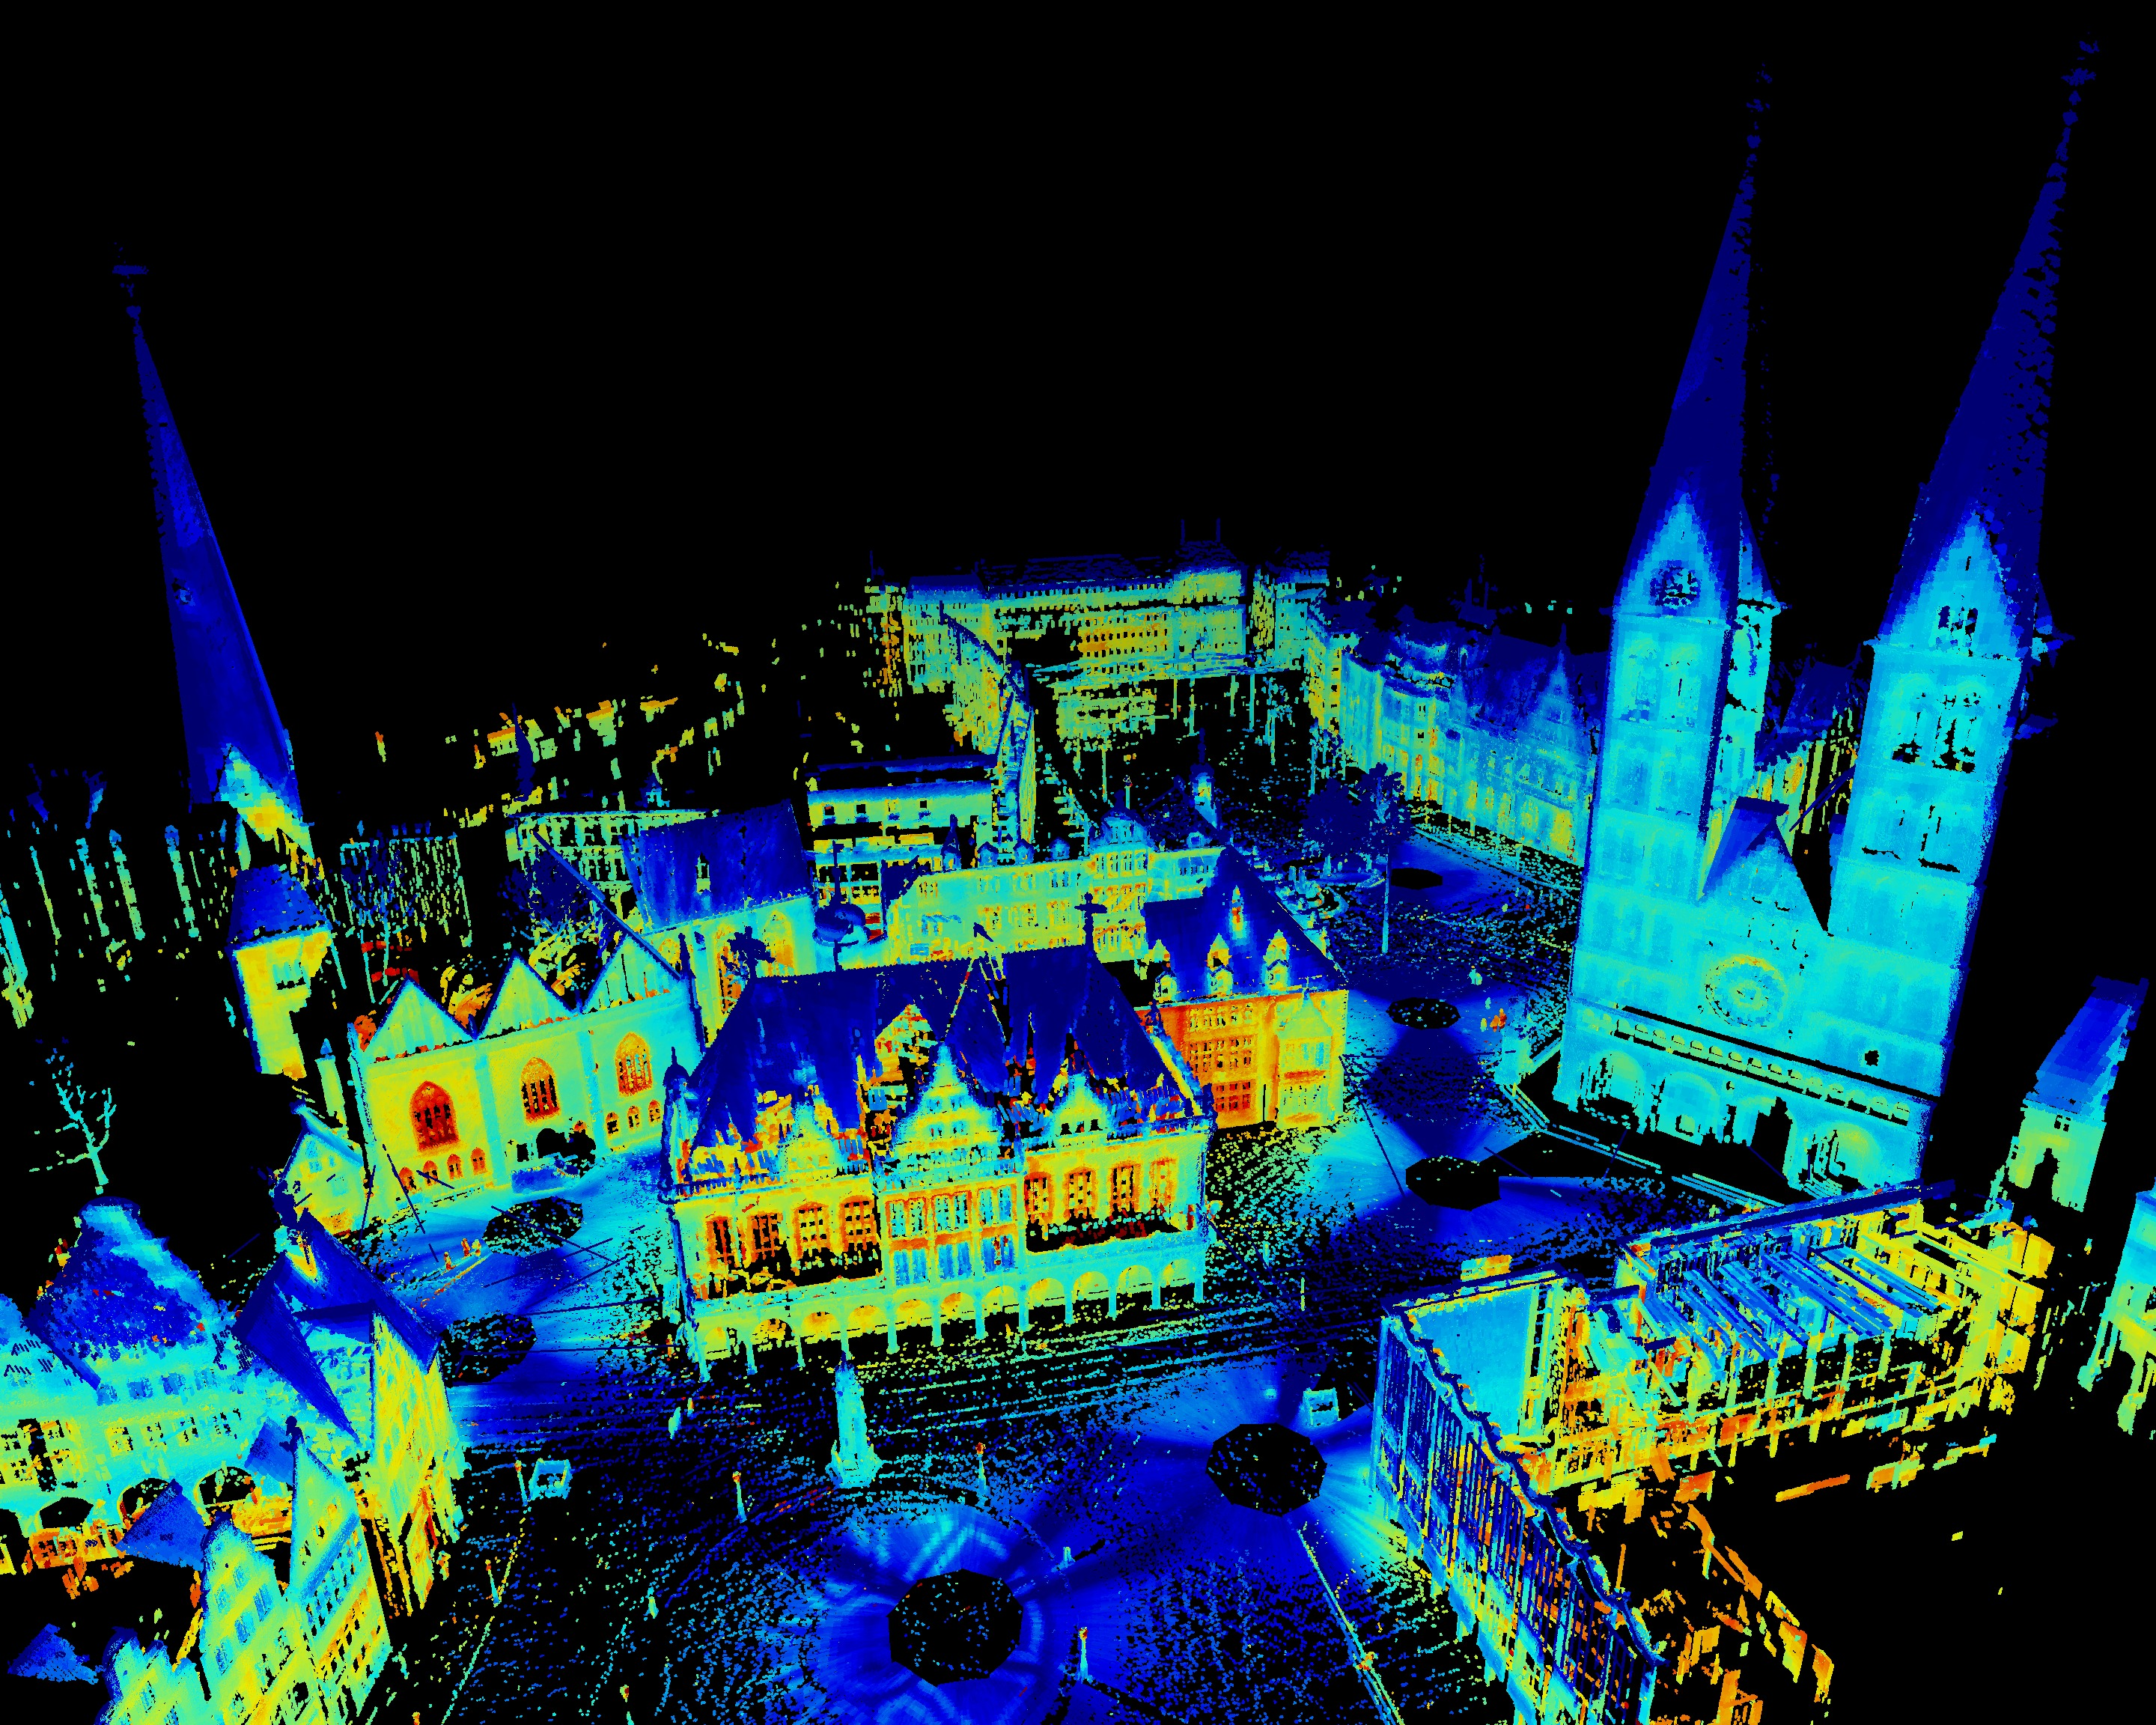 3D Scanning Enables Affordable Reality Capture